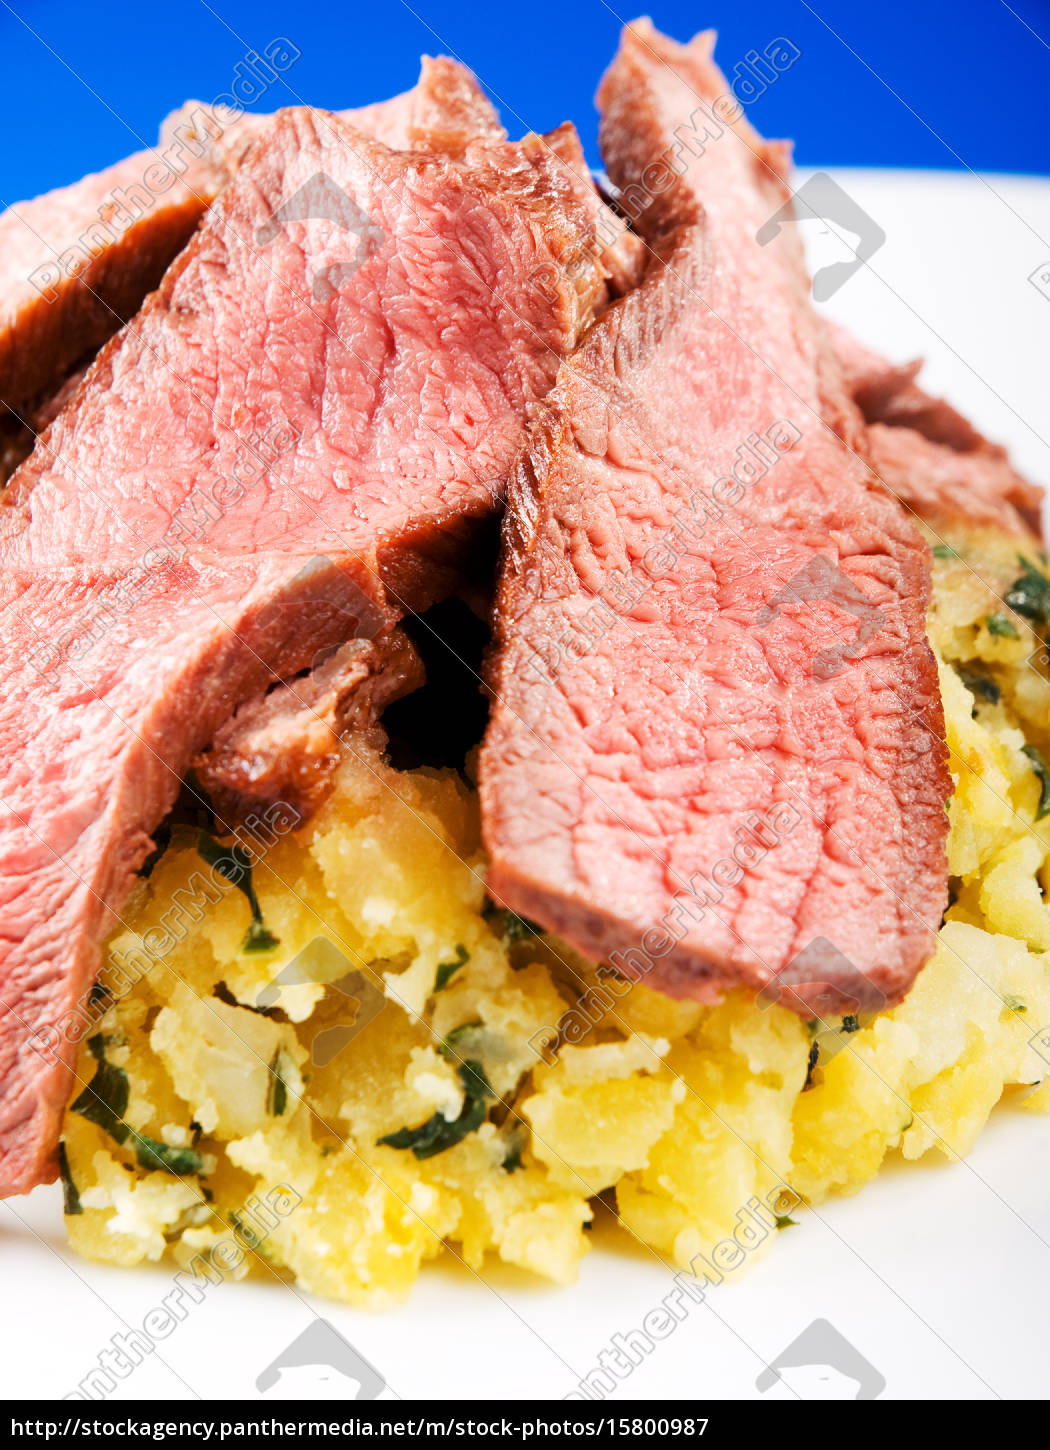 veal, with, potatos, veal, with, potatos, veal, with - 15800987